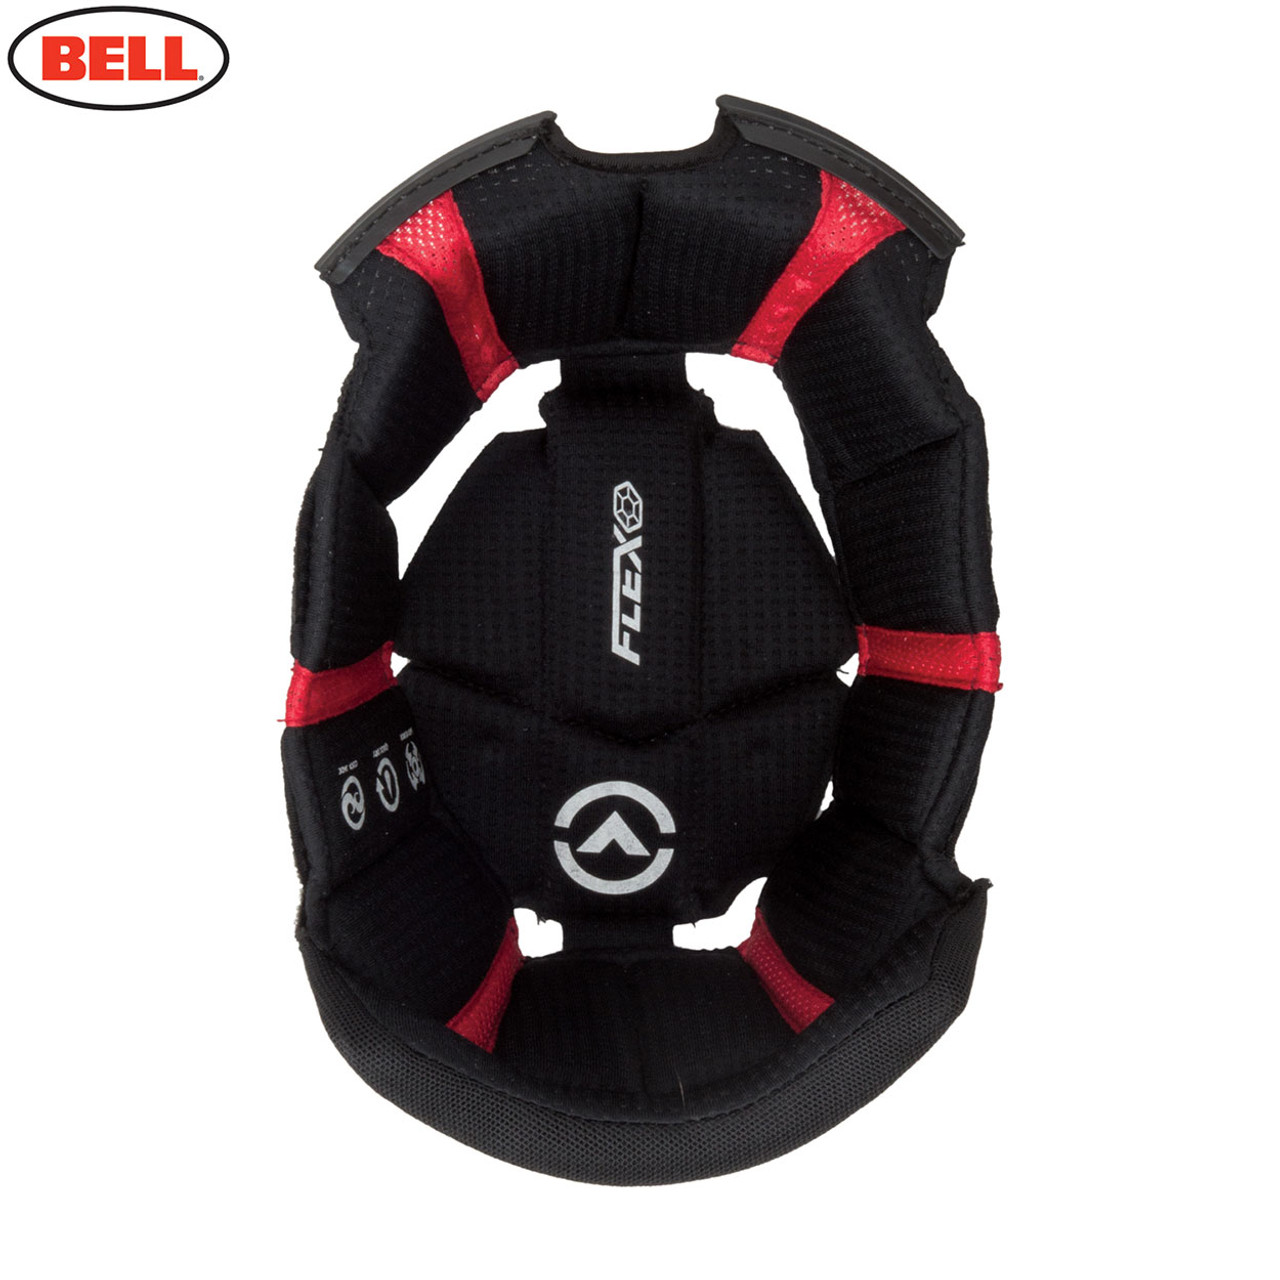 Bell Race//Pro Star Cheek Pads Triple Density,45mm